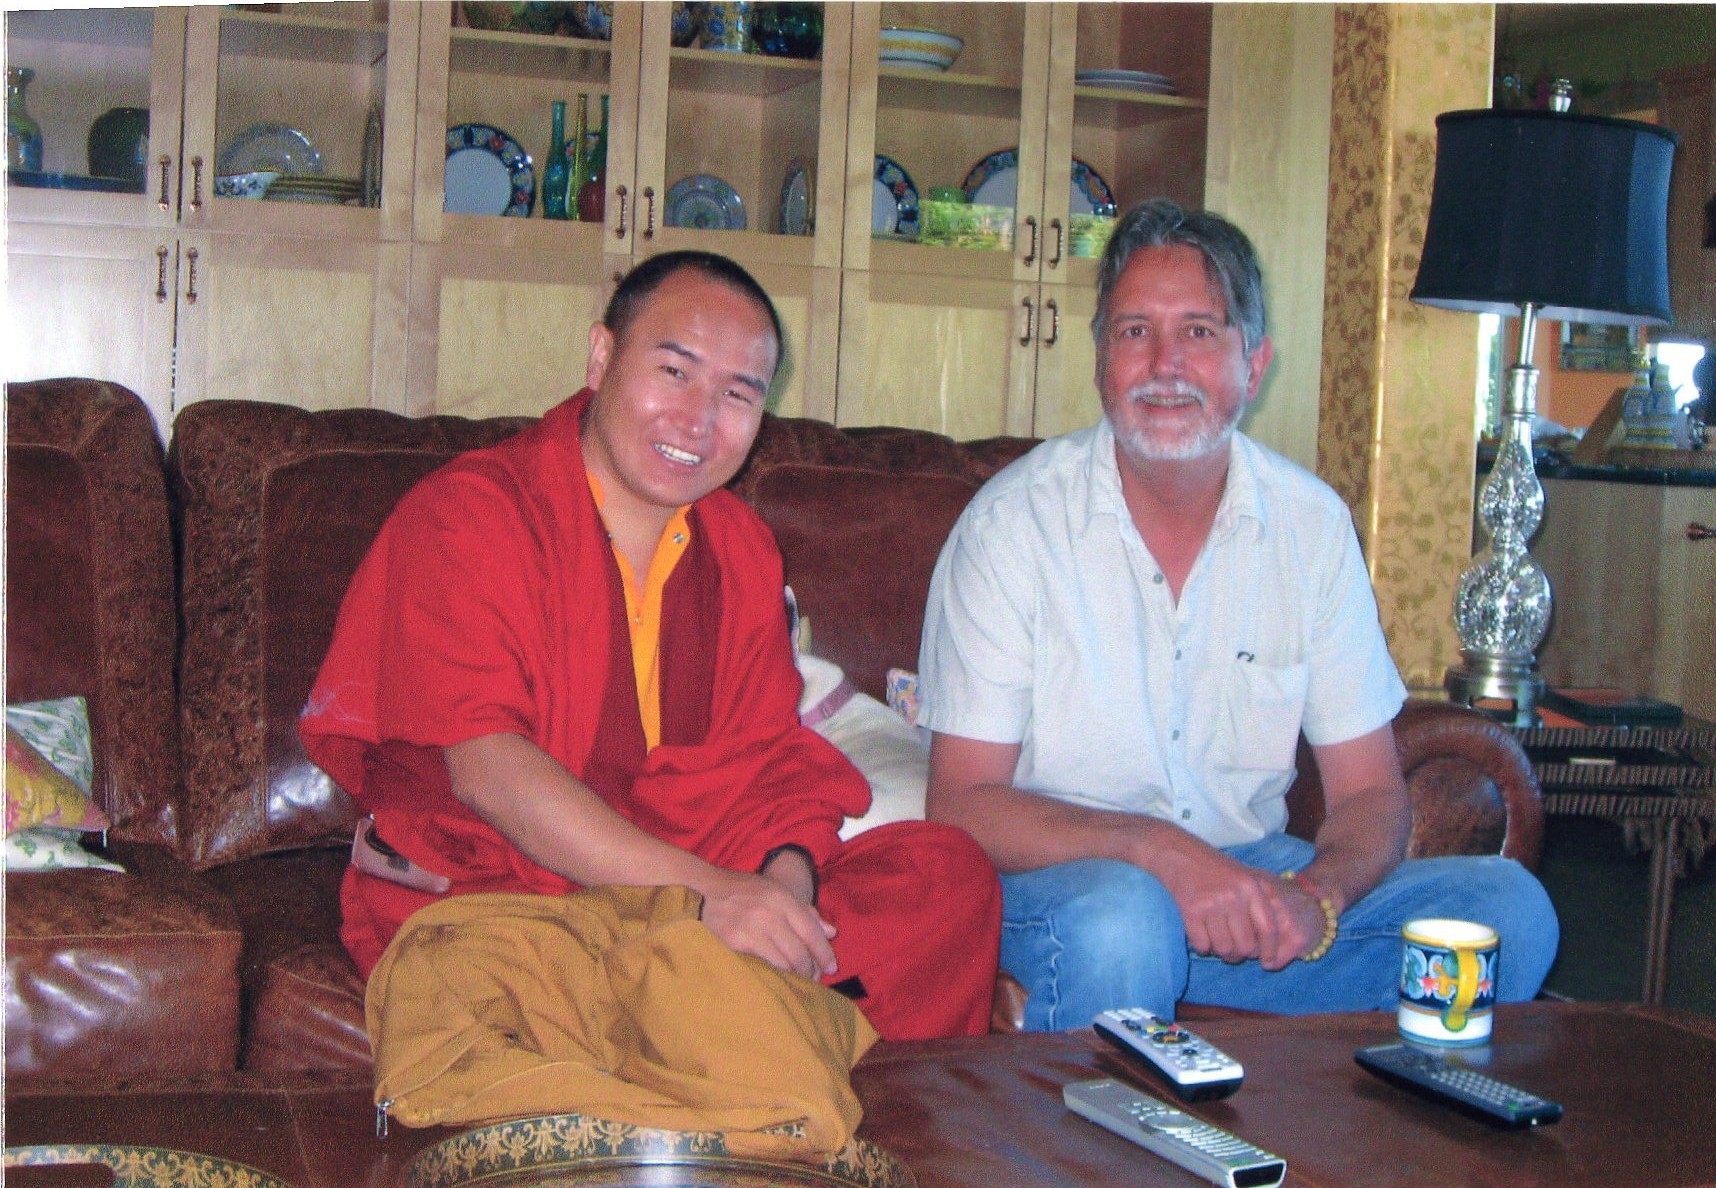 Tulku Damcho Rinpoche and Lama Thapkhay in Point Arena, 2008